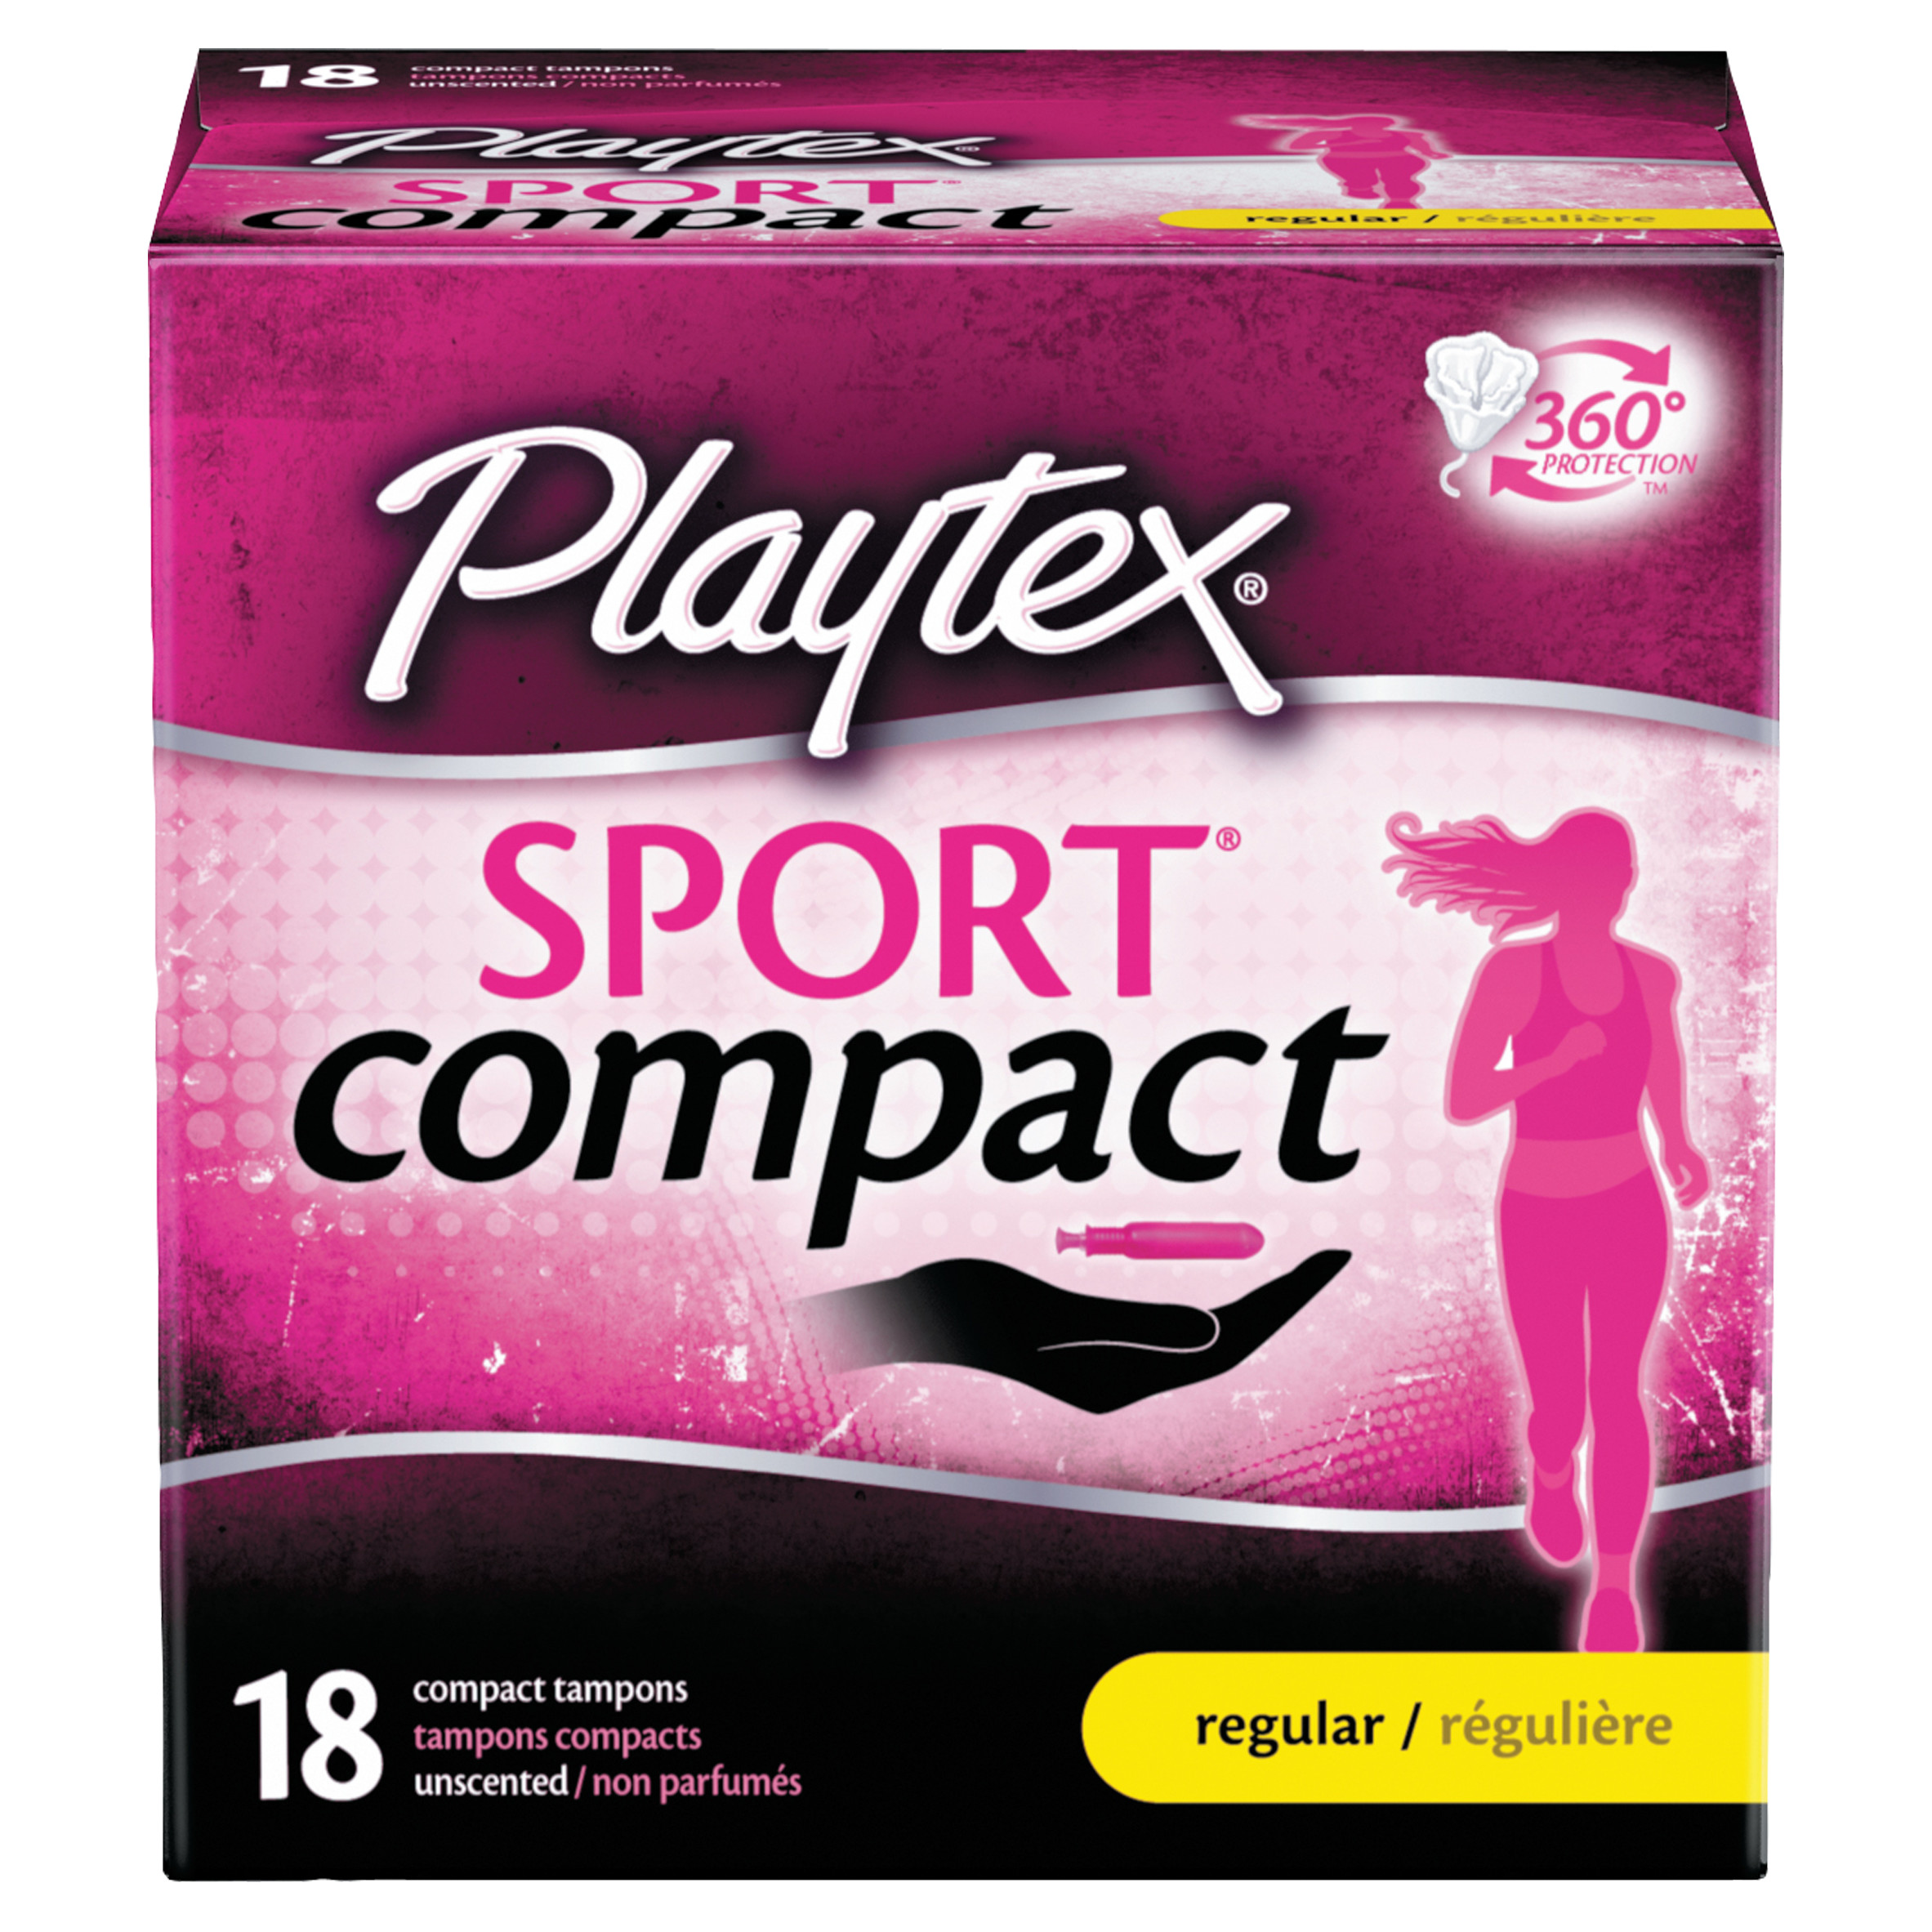 Playtex Sport Compact Unscented Tampons, Regular Absorbency, 18 Ct